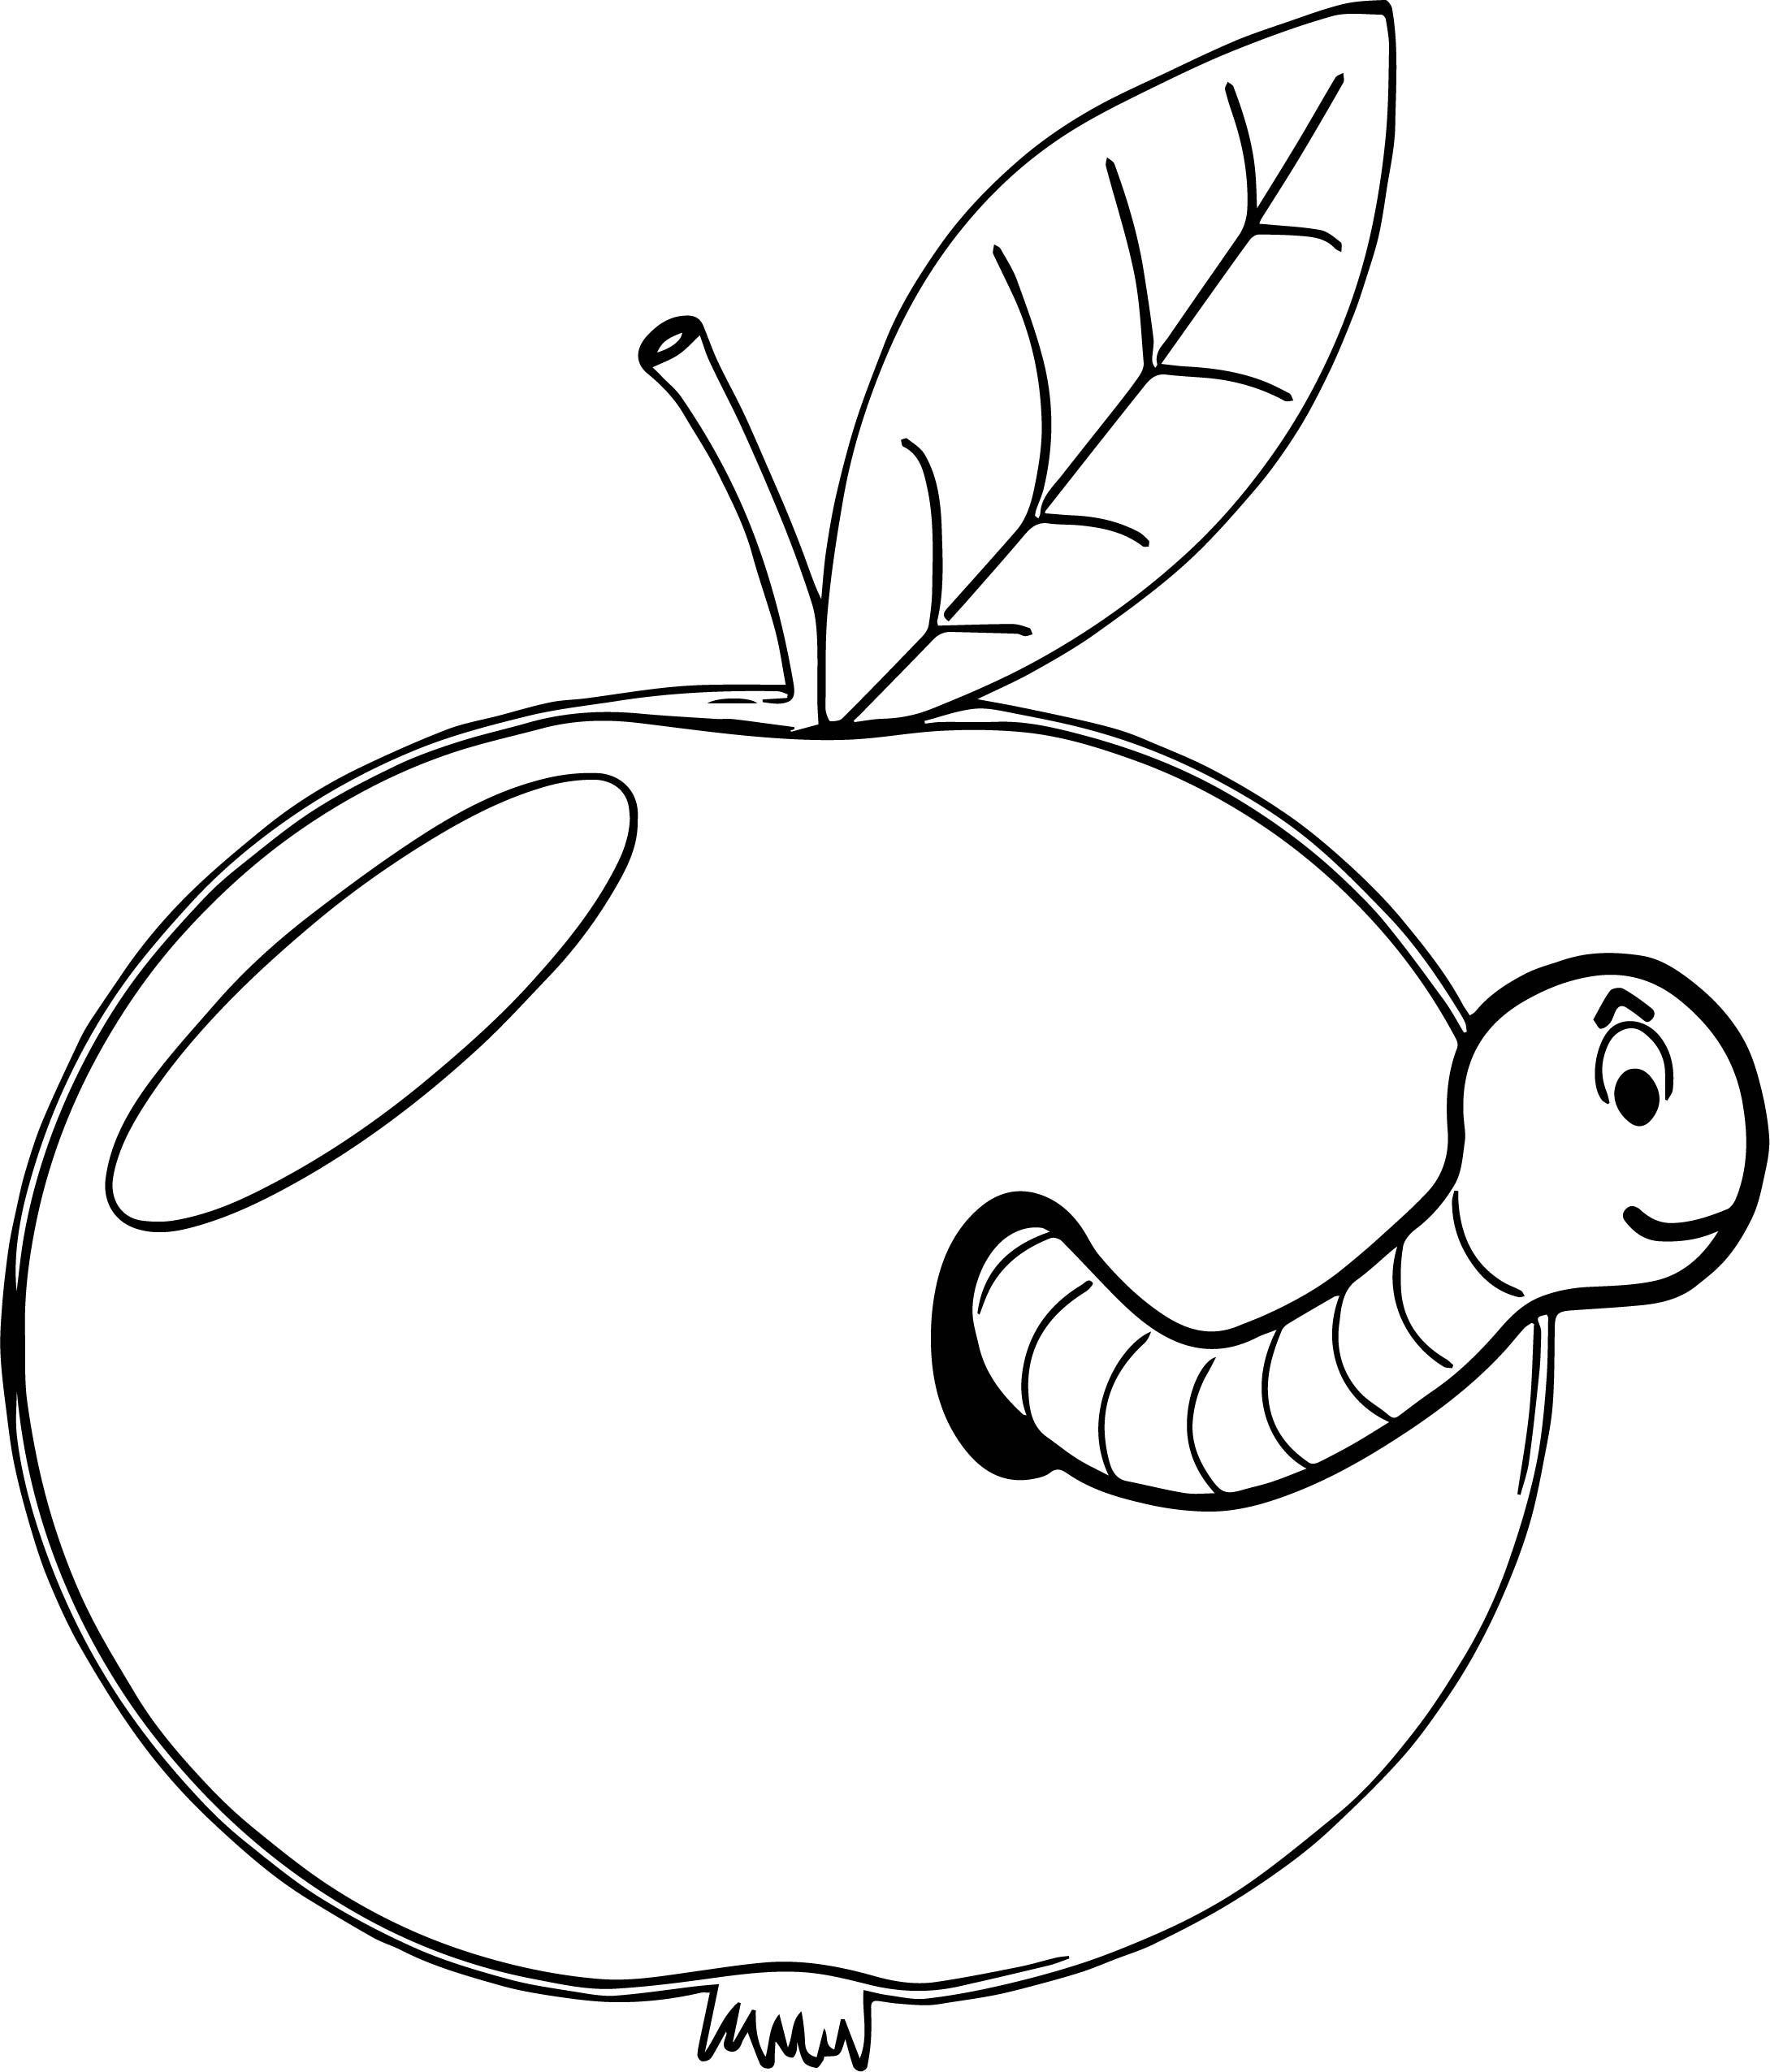 Nice Apple And Worm Coloring Page Coloring Pages Free Printable Coloring Sheets Bible Coloring Sheets